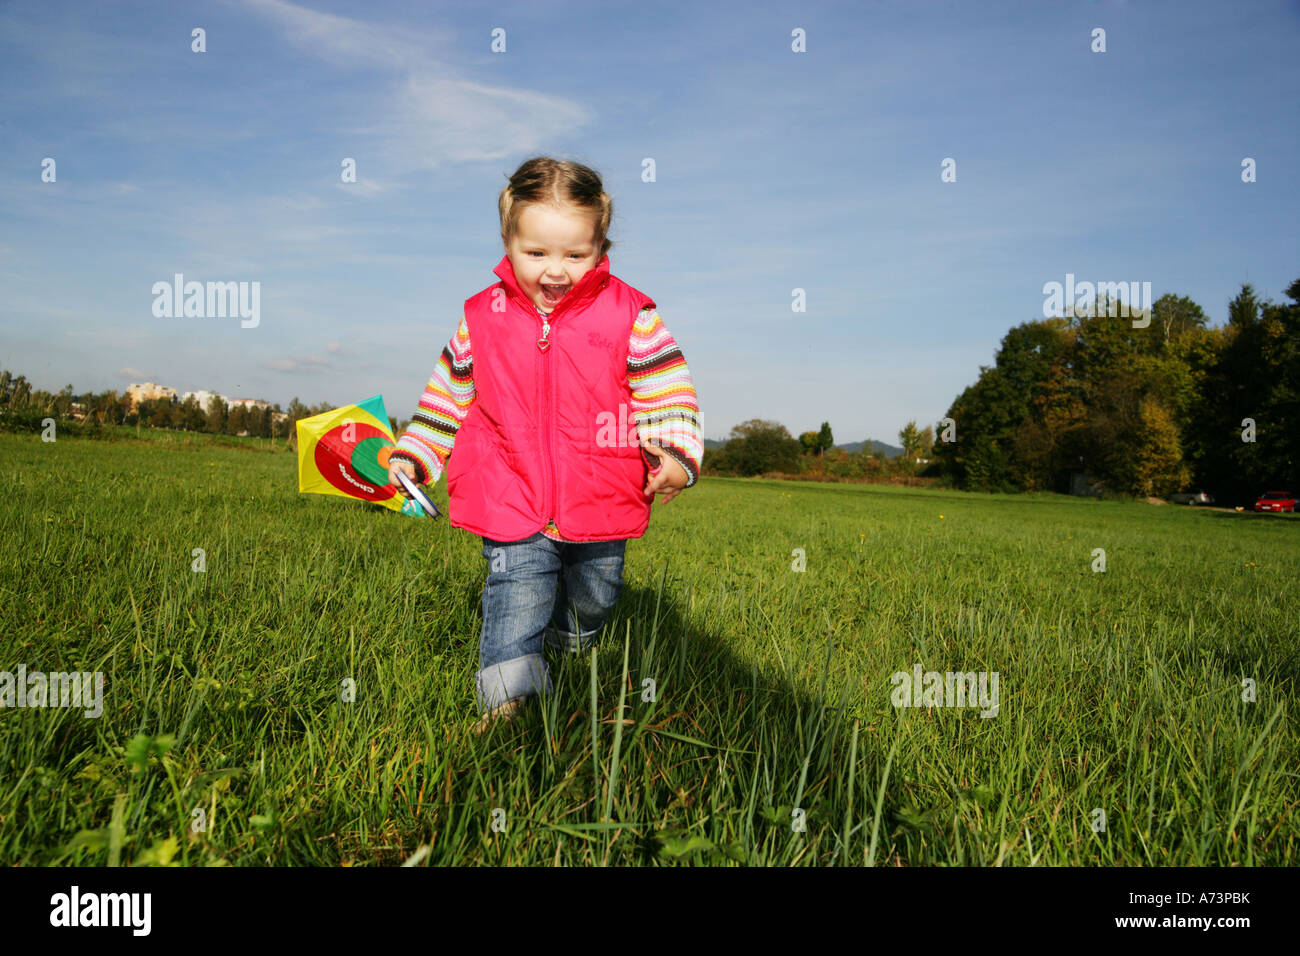 little girl playing with kite - Stock Image